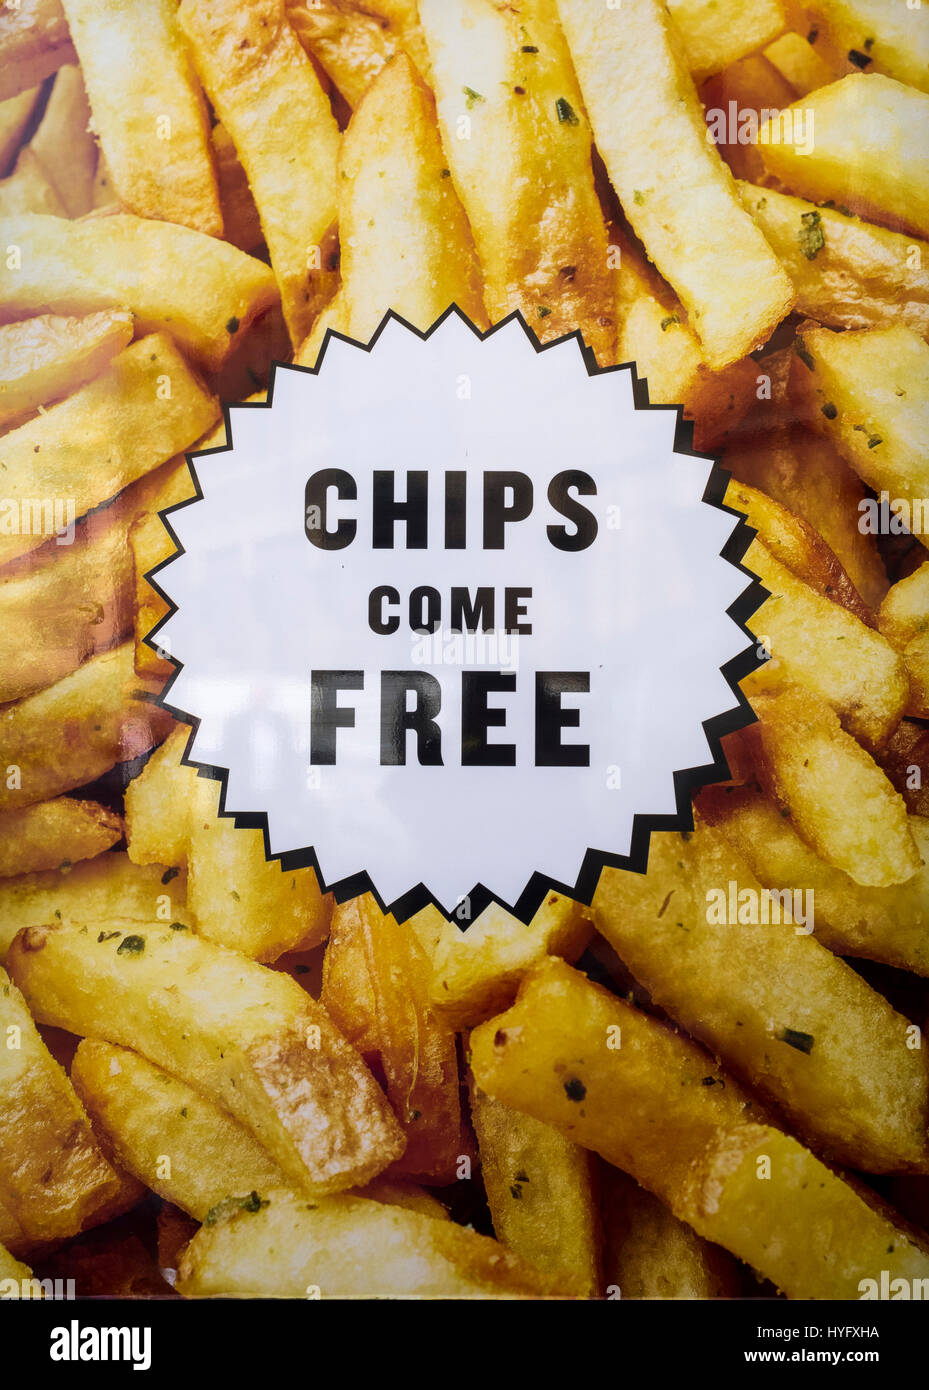 advertising-free-chips-with-meals-HYFXHA